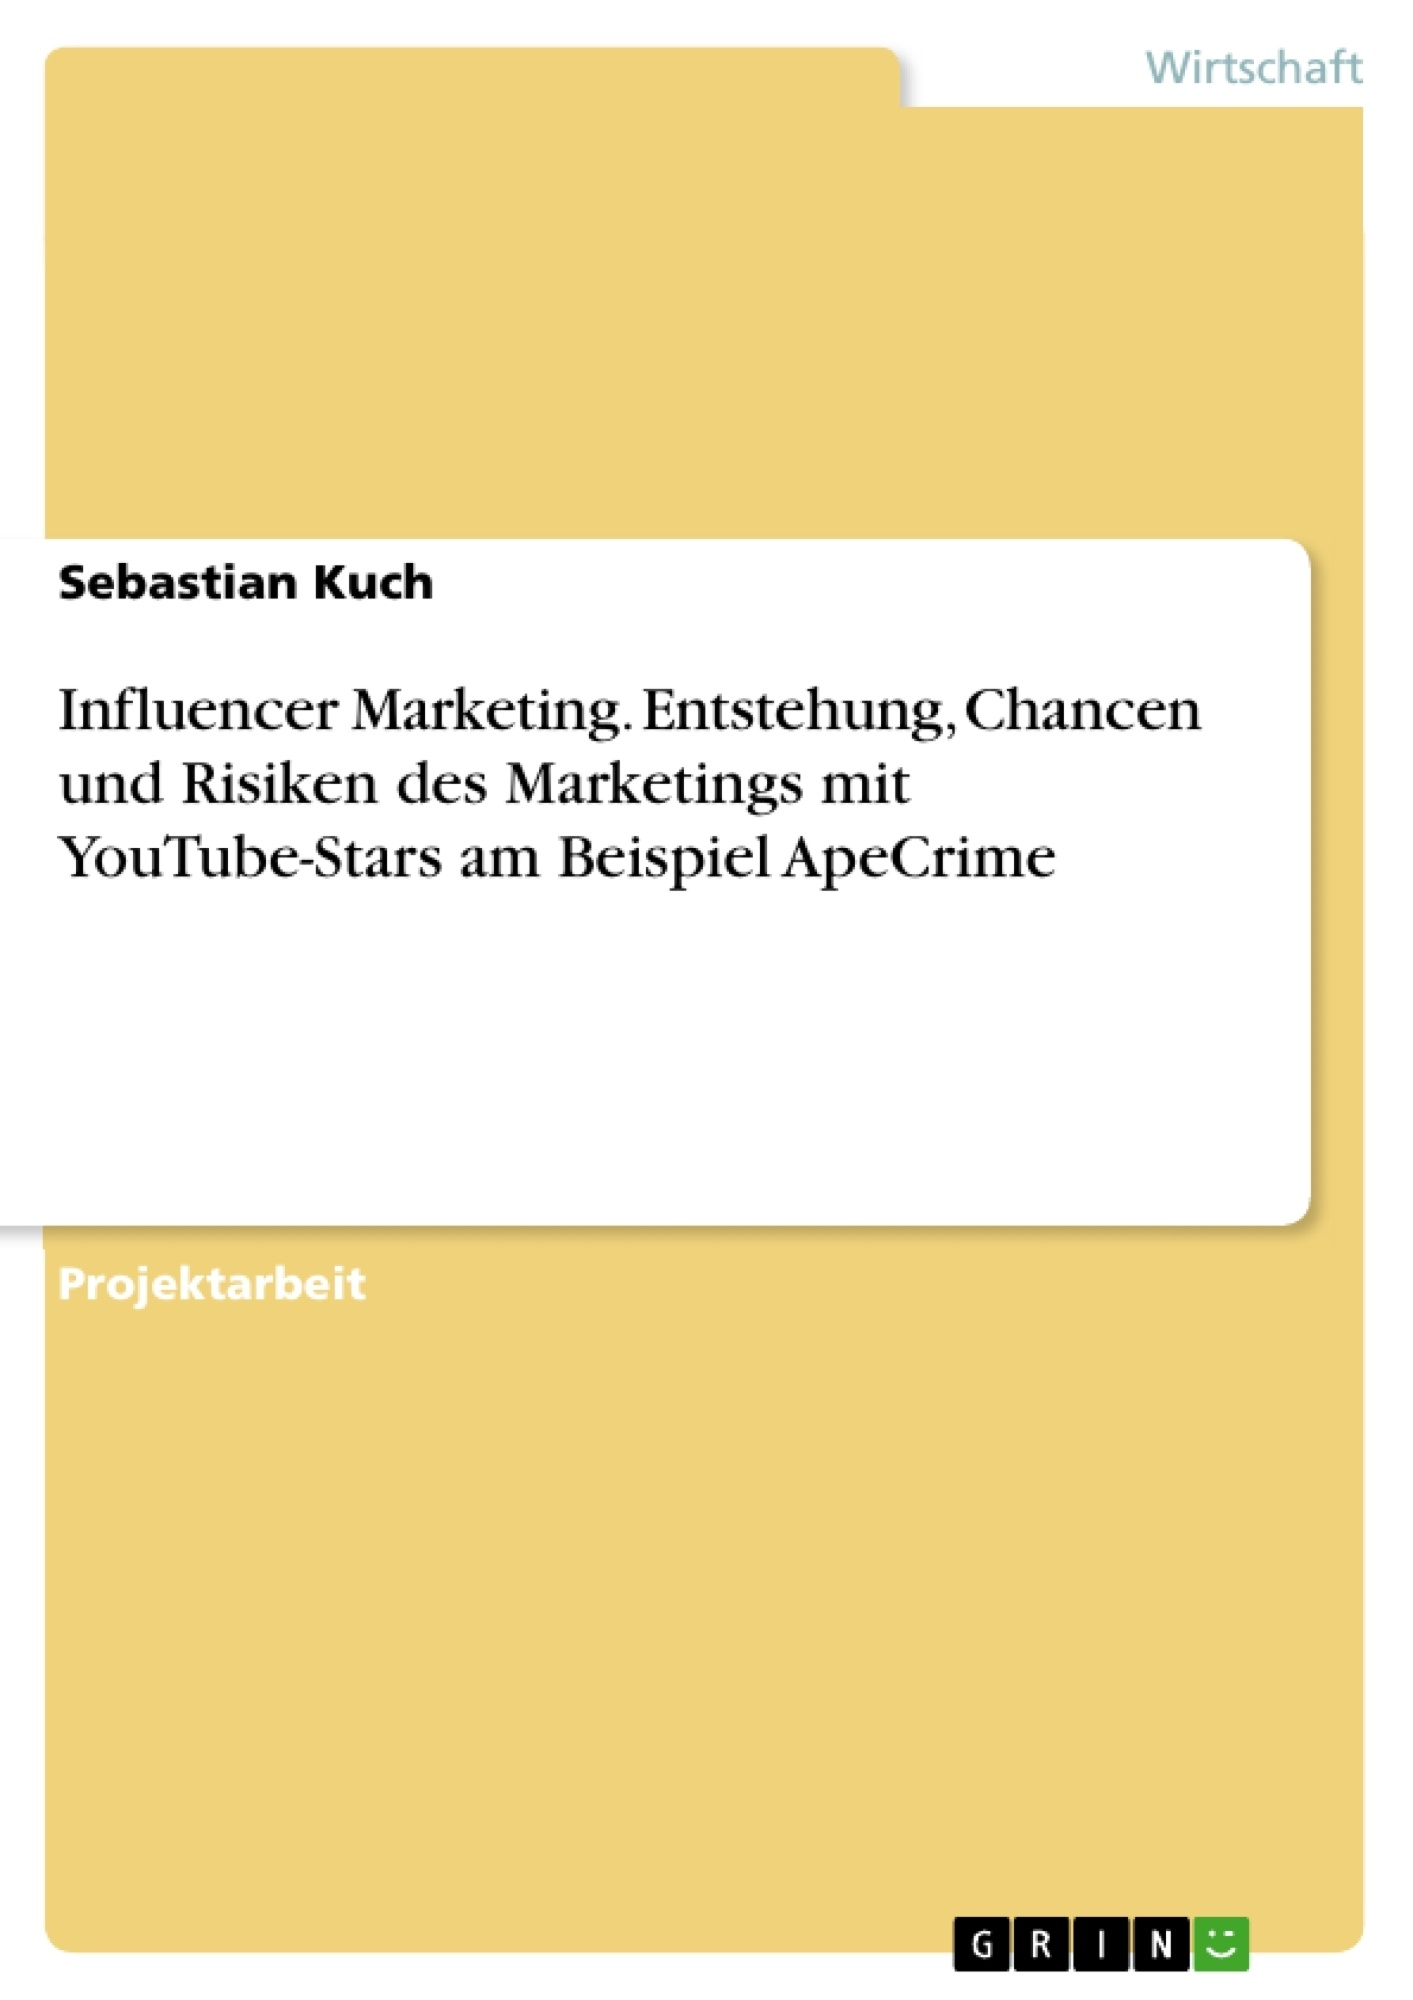 Titel: Influencer Marketing. Entstehung, Chancen und Risiken des Marketings mit YouTube-Stars am Beispiel ApeCrime